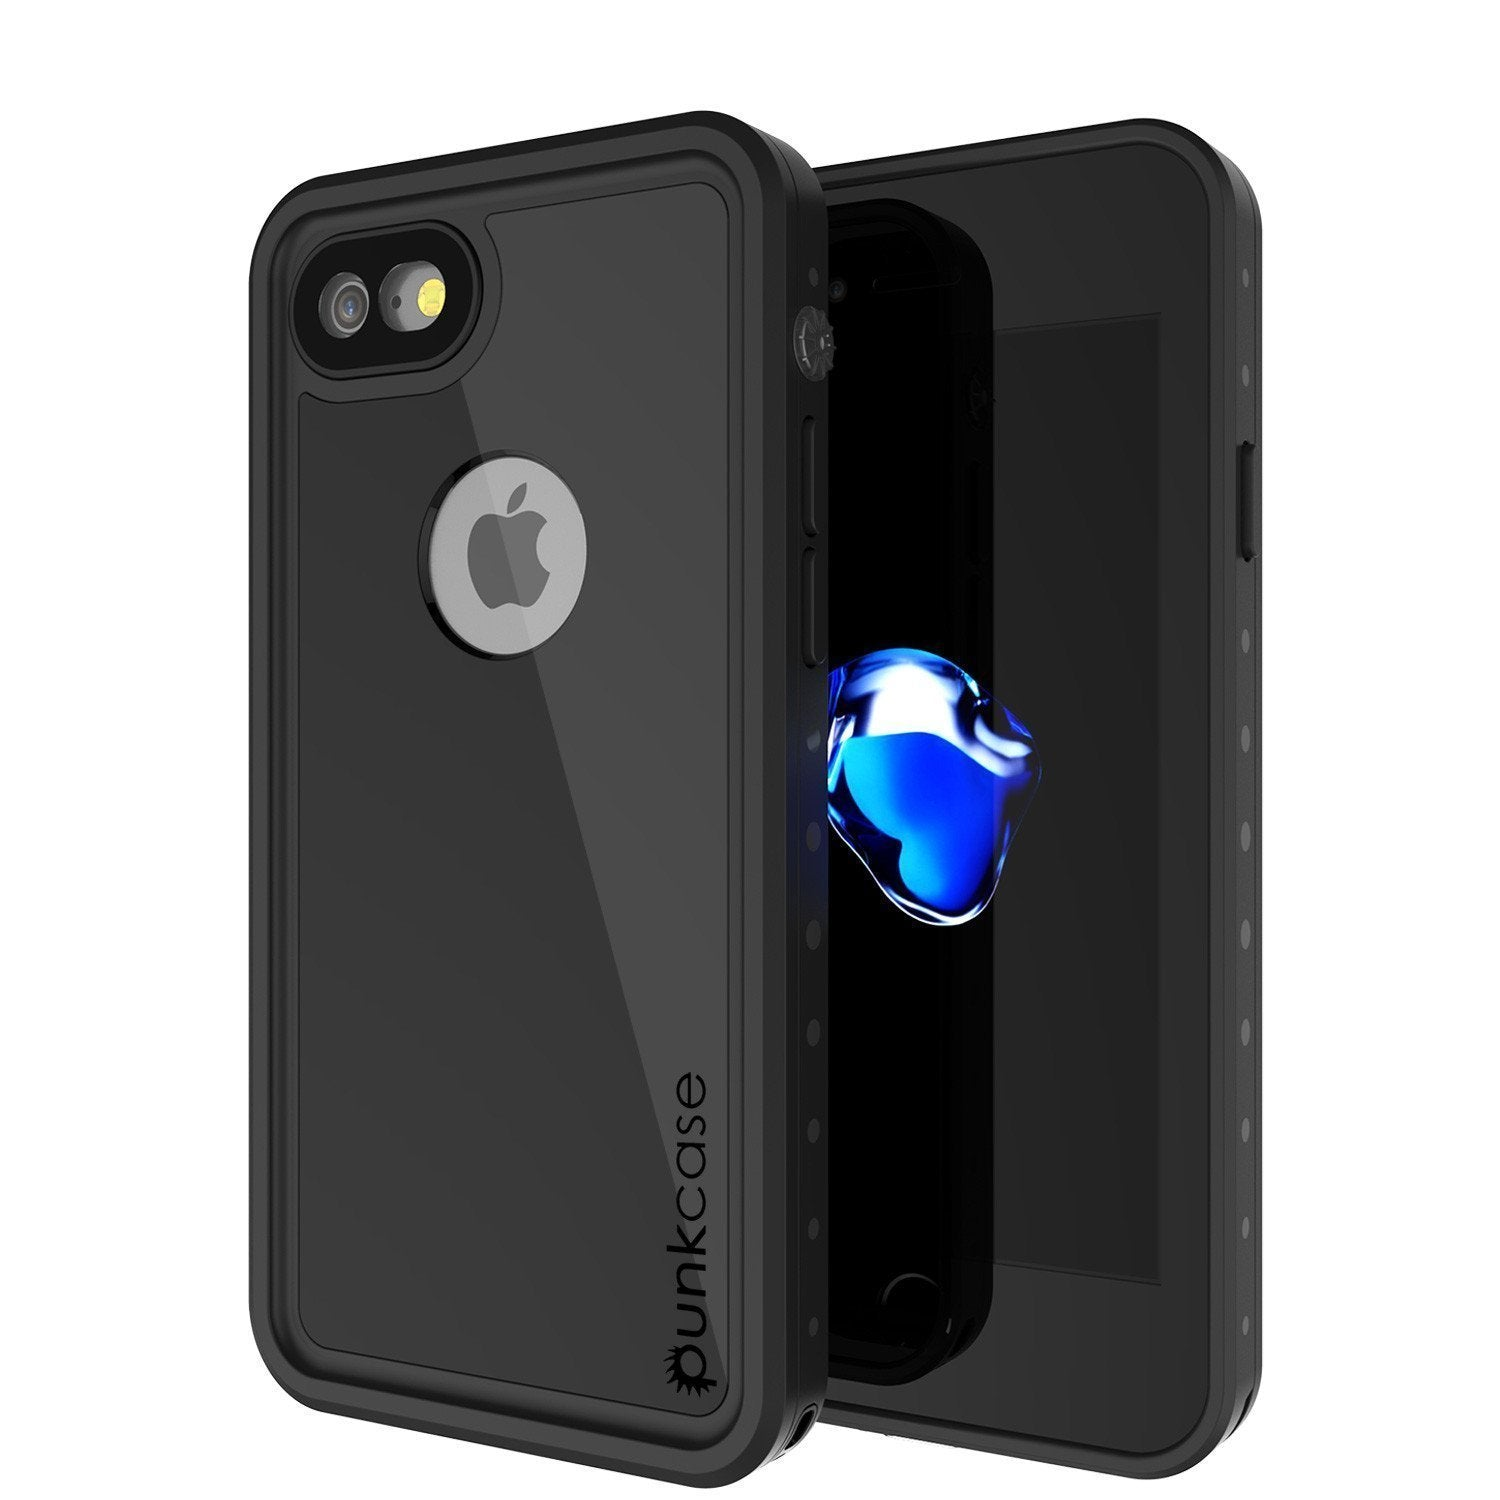 "iPhone SE (4.7"") Waterproof Case, Punkcase [Black] [StudStar Series] [Slim Fit] [IP68 Certified][Dirtproof] [Snowproof]"